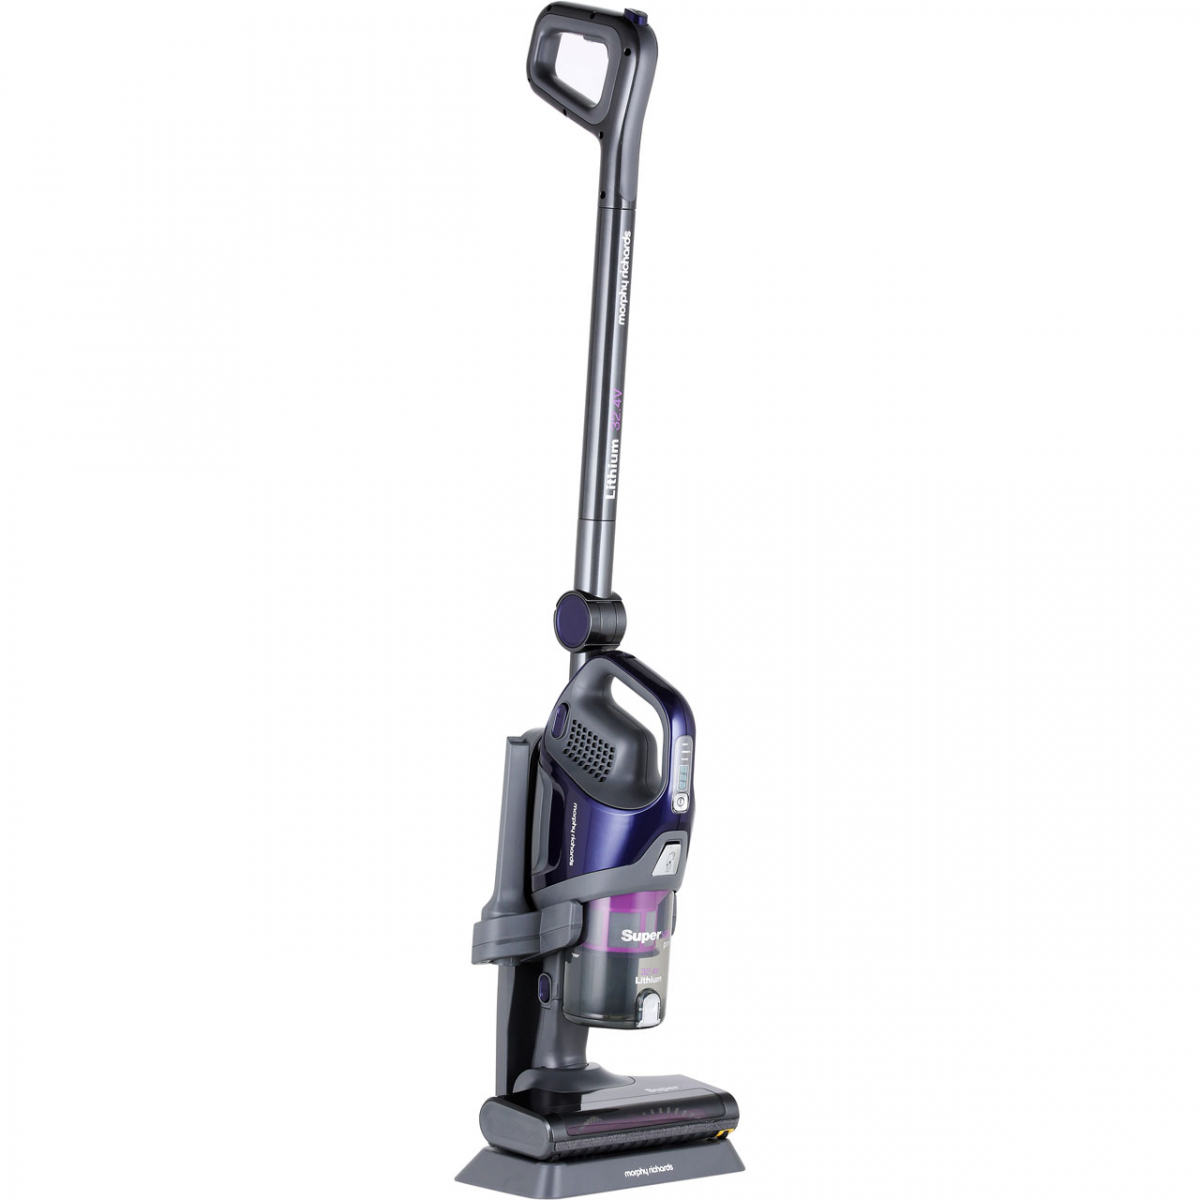 morphy_richards_supervac_pro_734030_1550079743_5c6456ff5e7f1.jpg